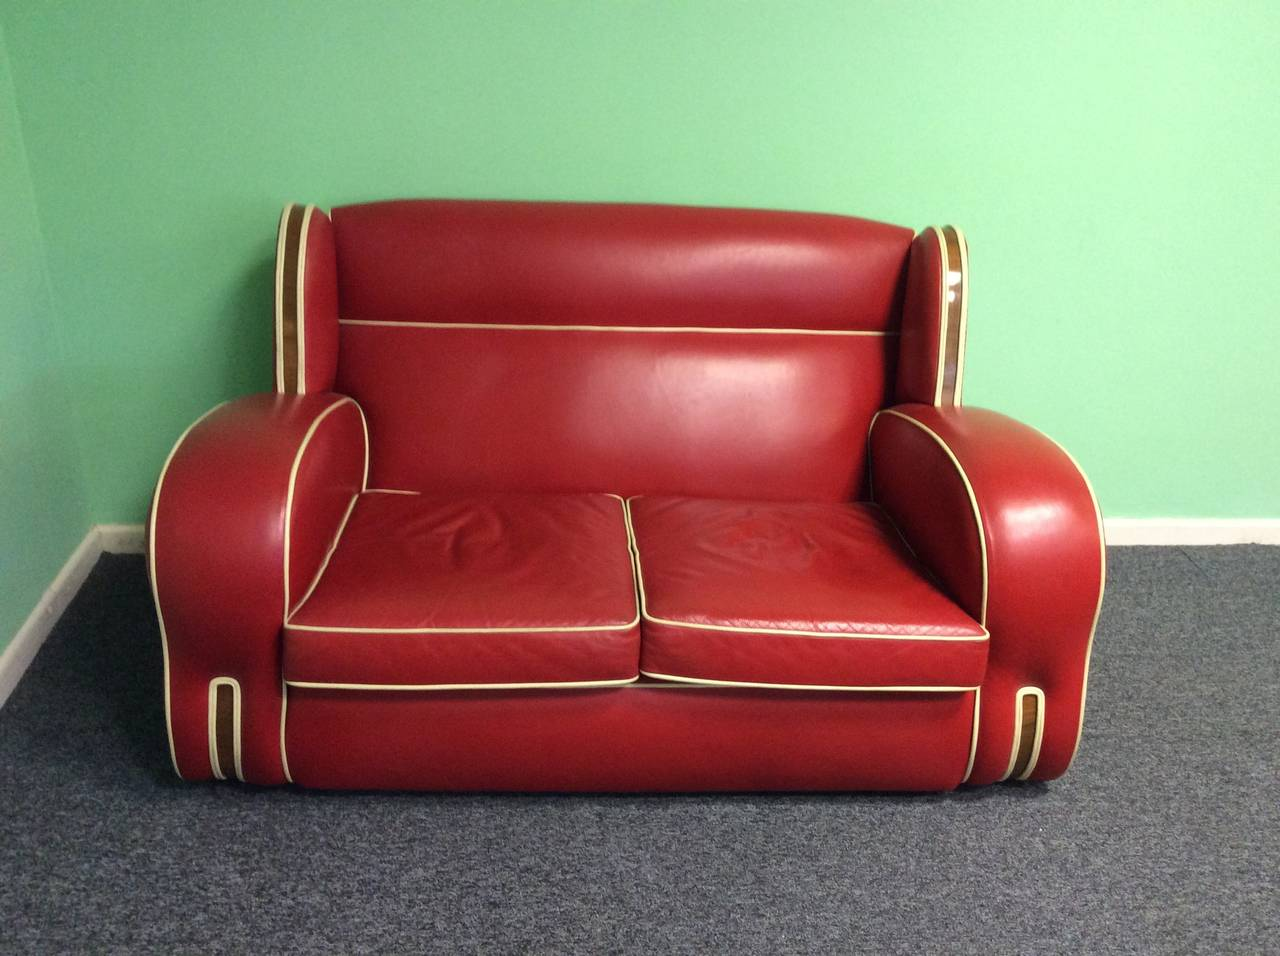 art deco red leather sofa at 1stdibs. Black Bedroom Furniture Sets. Home Design Ideas